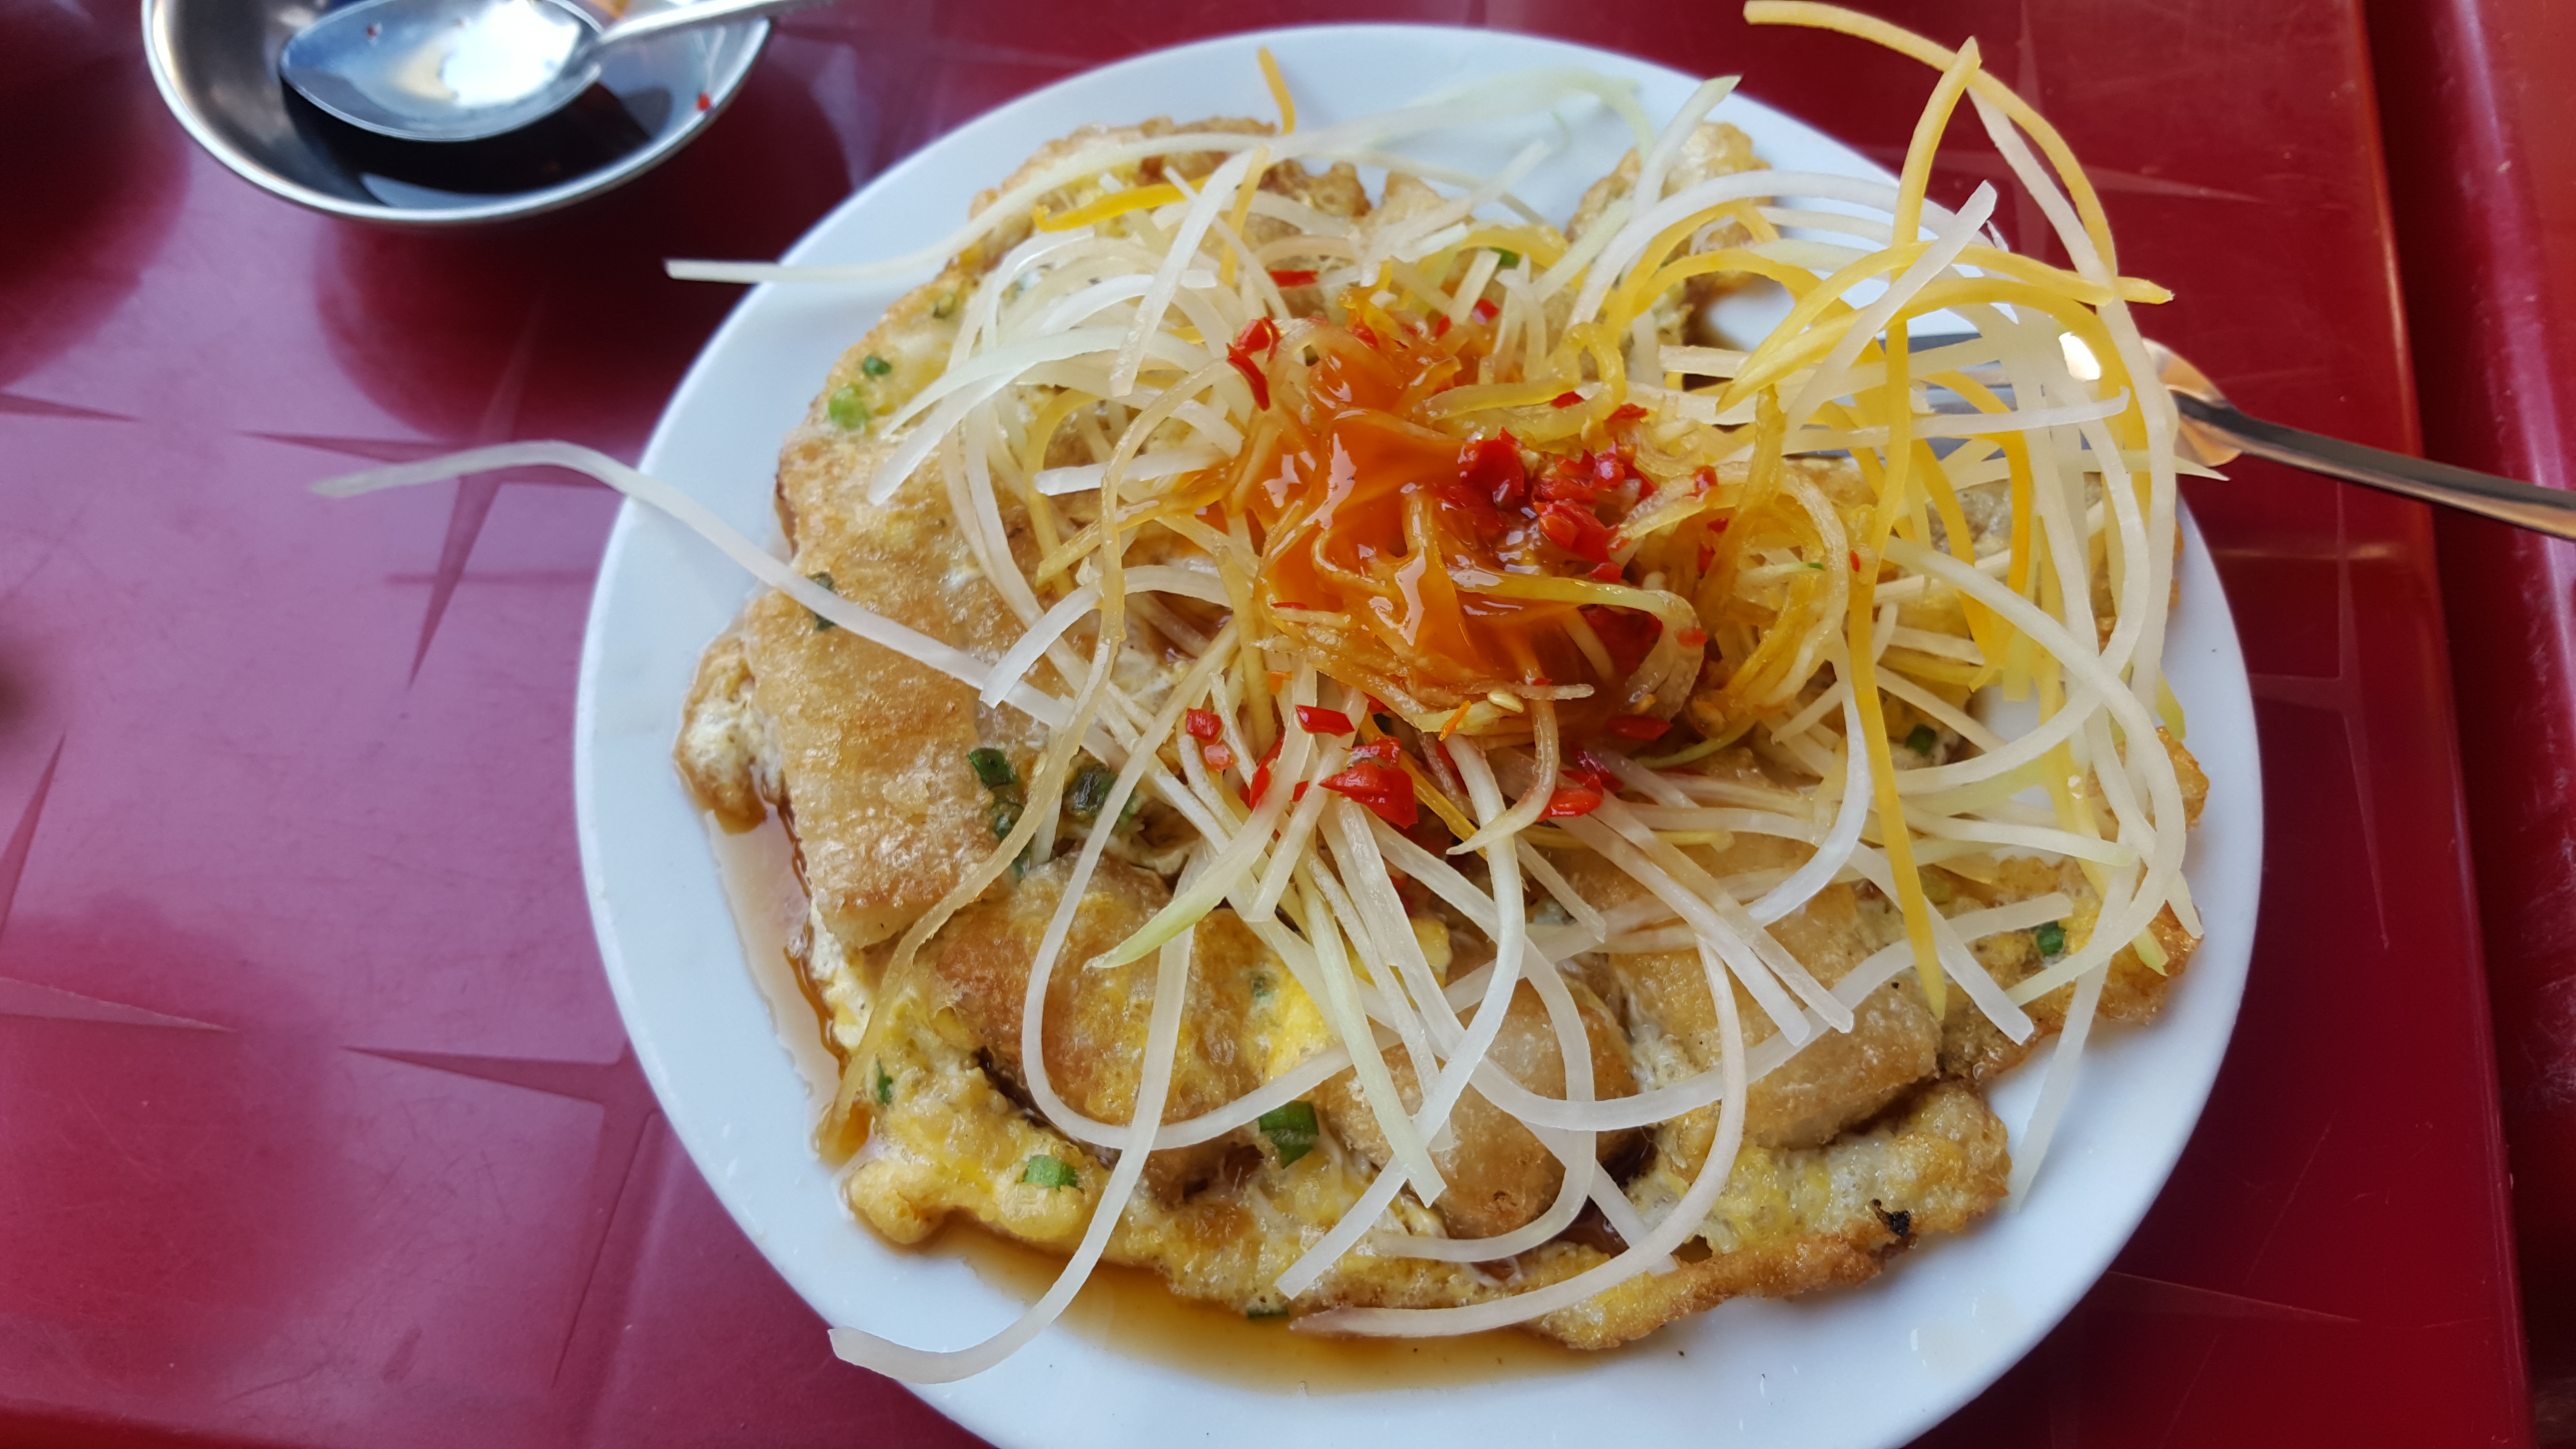 Exotic Saigon - Street Foods - Rice 'n Flour